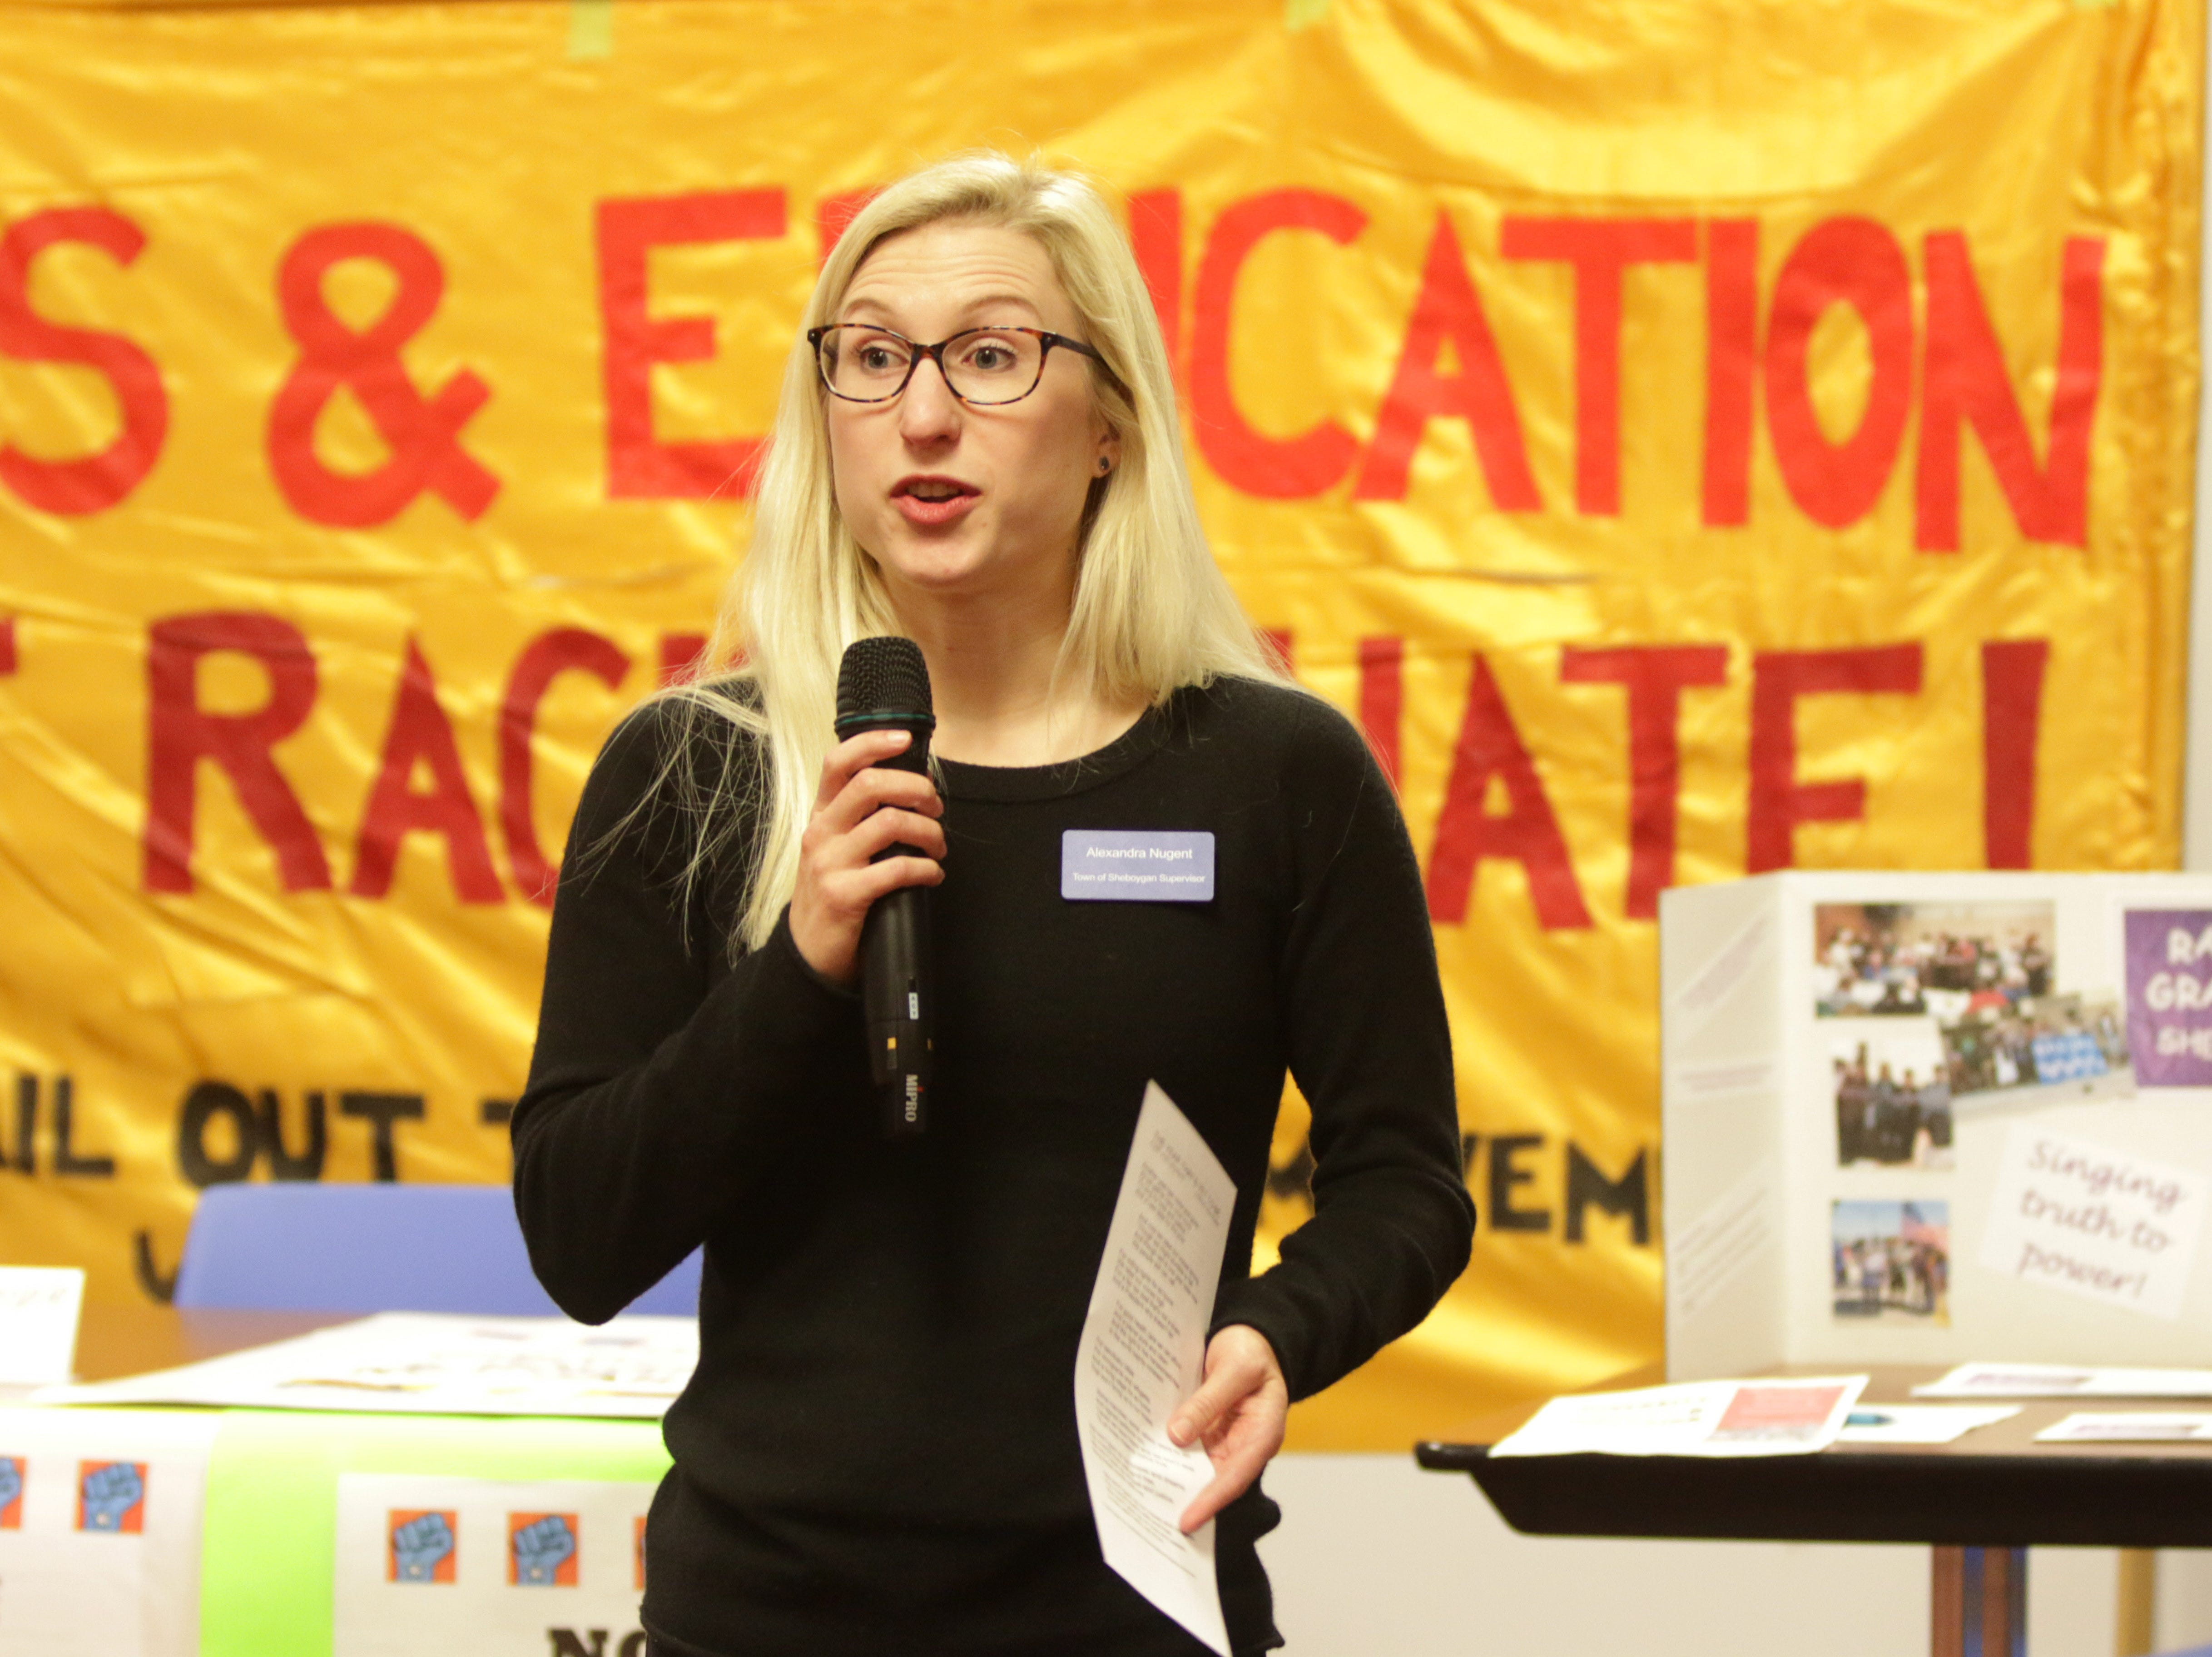 Alexandra Nugent speaks at the Sheboygan  Community event at Mead Public library, Saturday, January 19, 2019, in Sheboygan, Wis. The event focused on human rights, immigration, economic justice and drug abuse issues.